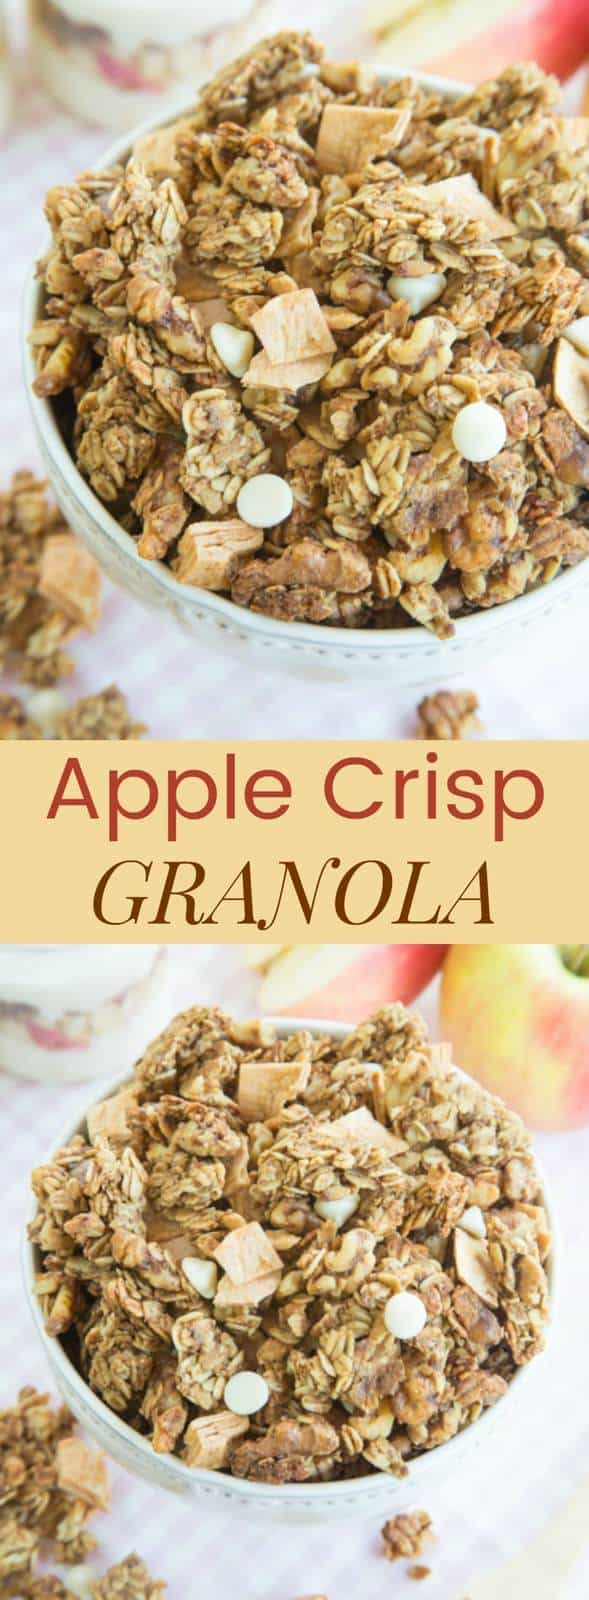 Apple Crisp Granola - an easy granola recipe to top your Greek yogurt for breakfast or snack with apple cinnamon flavor and crunchy nuts! It's also gluten free!